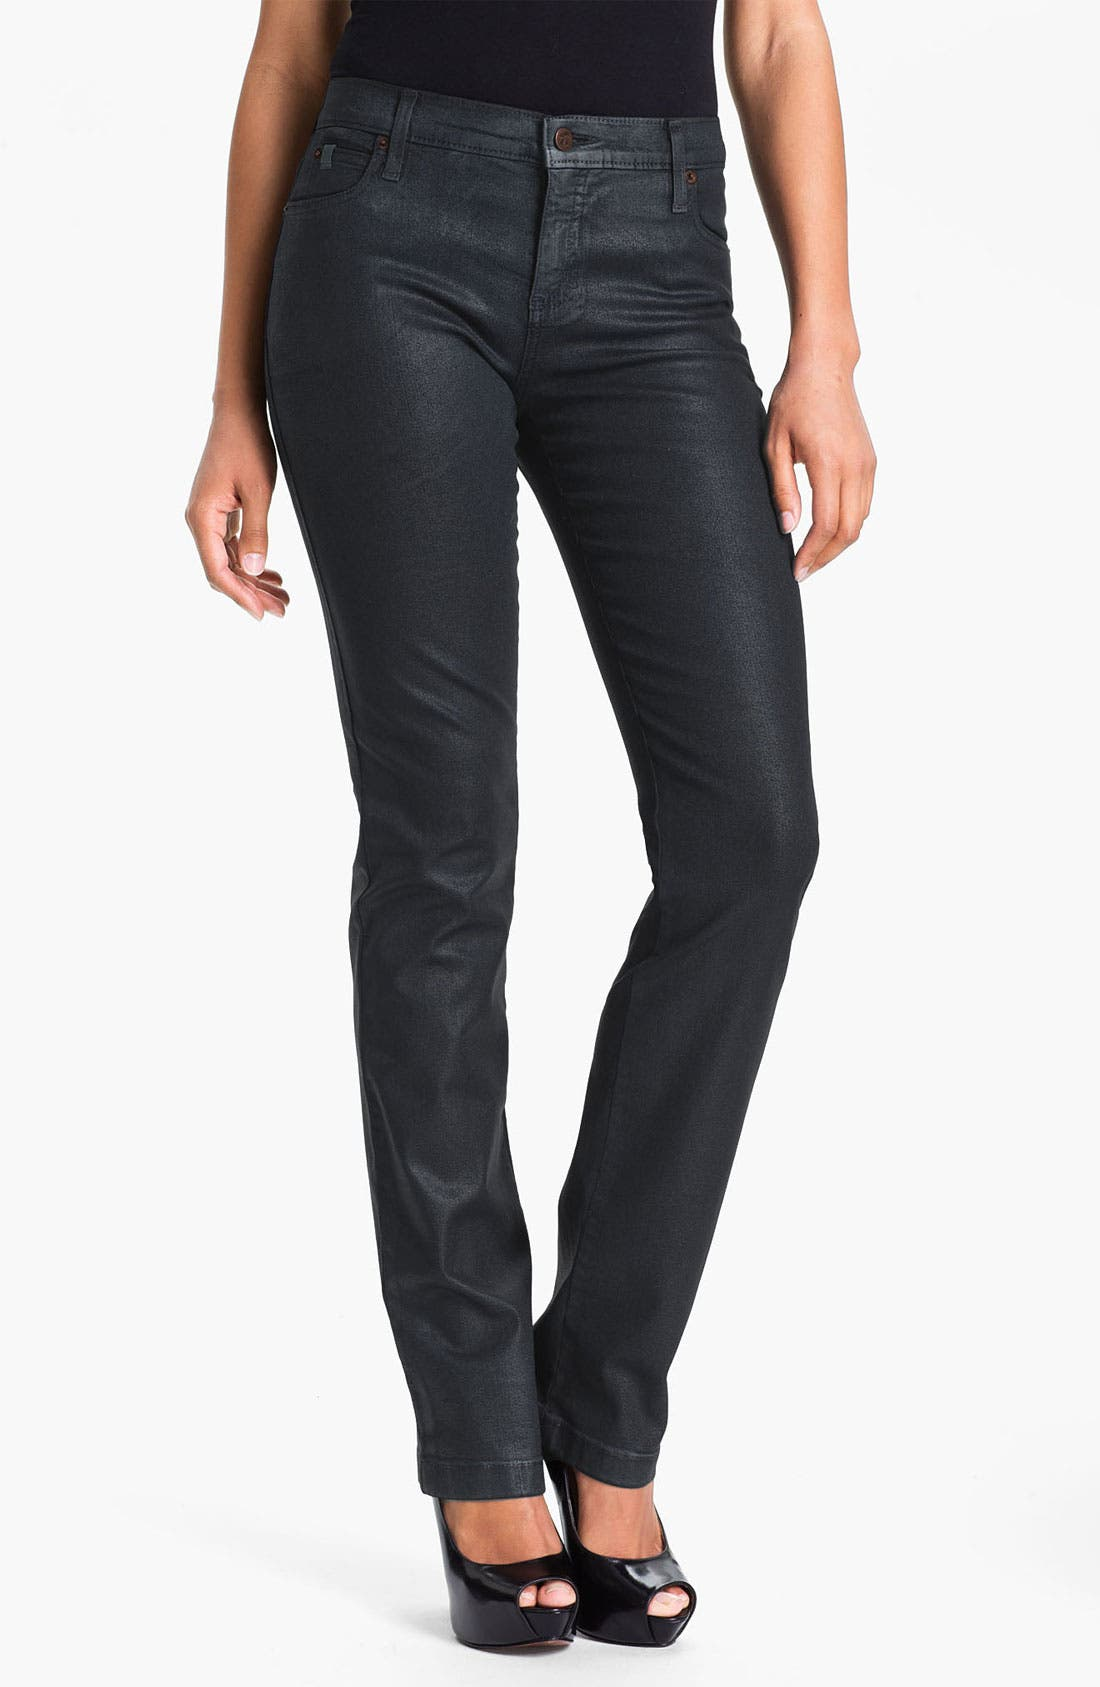 Alternate Image 1 Selected - Second Yoga Jeans High Rise Coated Straight Leg Jeans